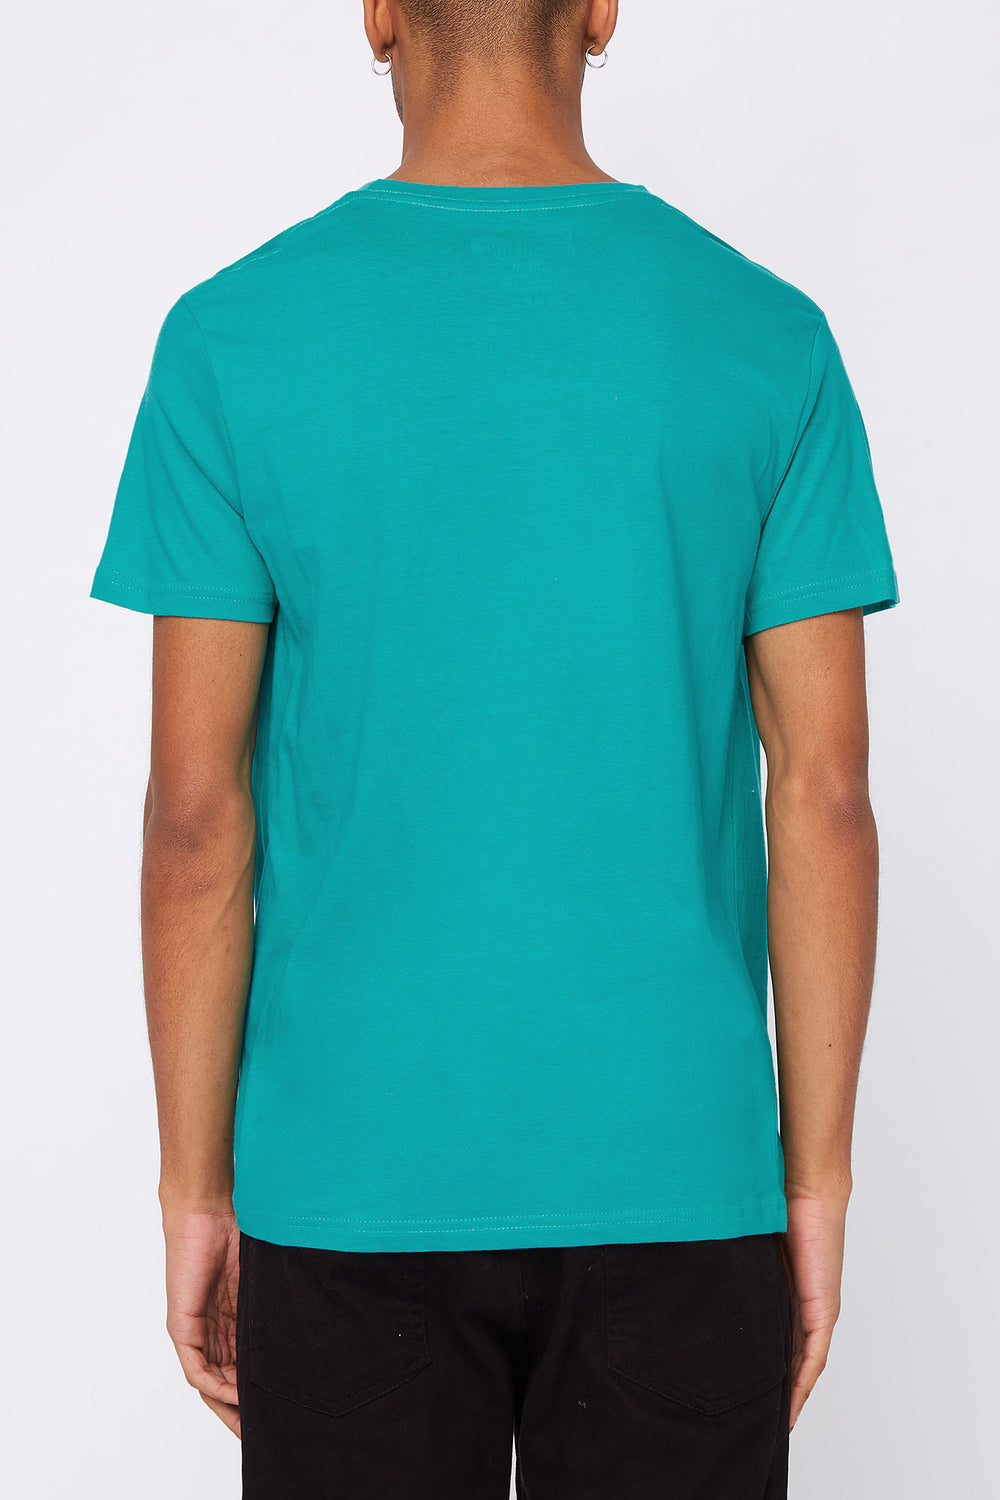 Zoo York Mens Patch Logo T-Shirt Turquoise